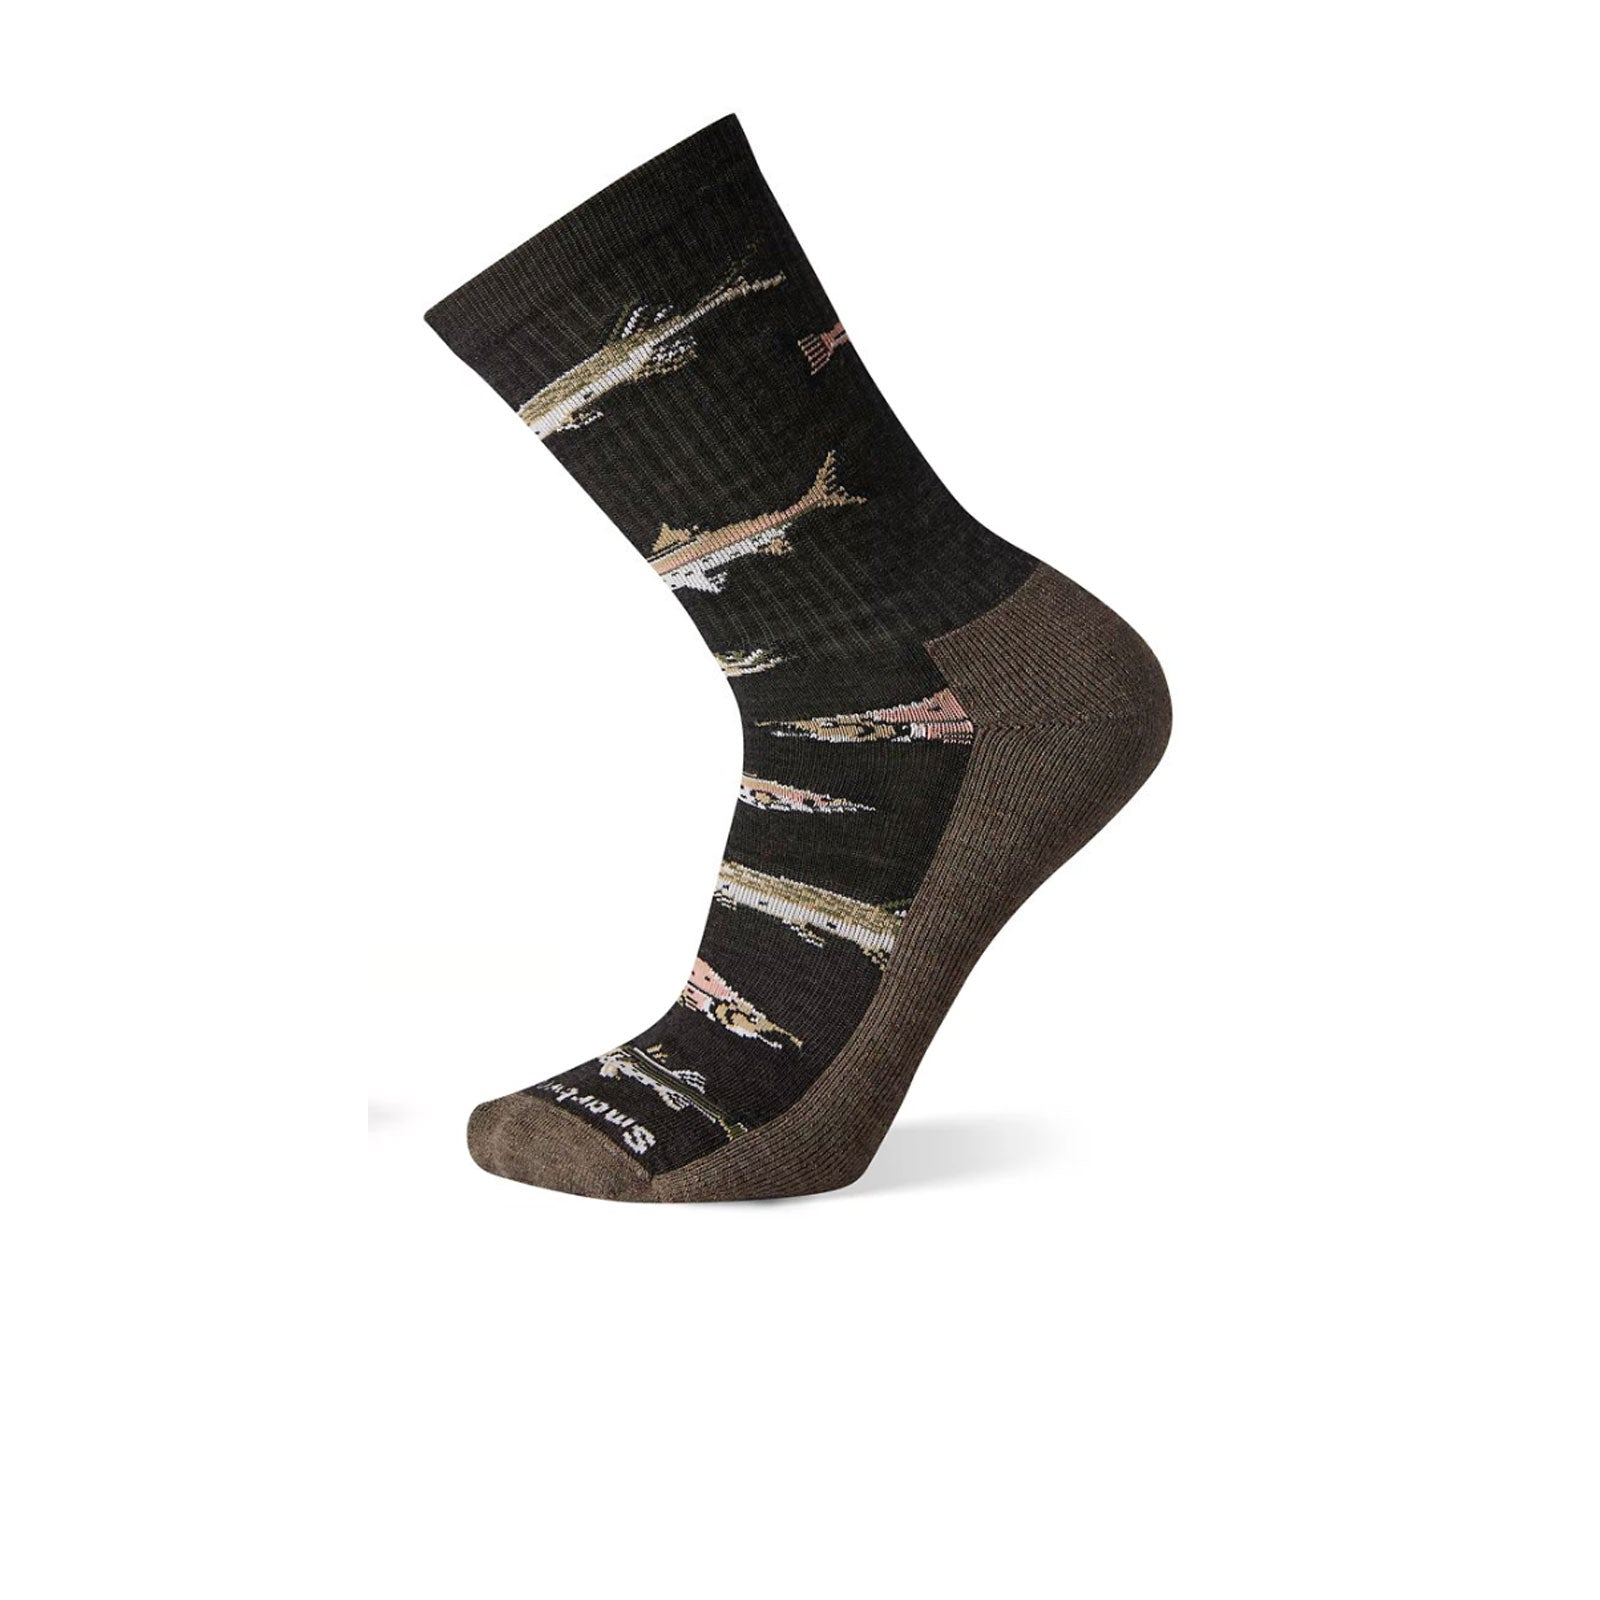 Smartwool Hike Light Fish Pattern Crew (Men) - Charcoal Socks - Life - Crew - The Heel Shoe Fitters